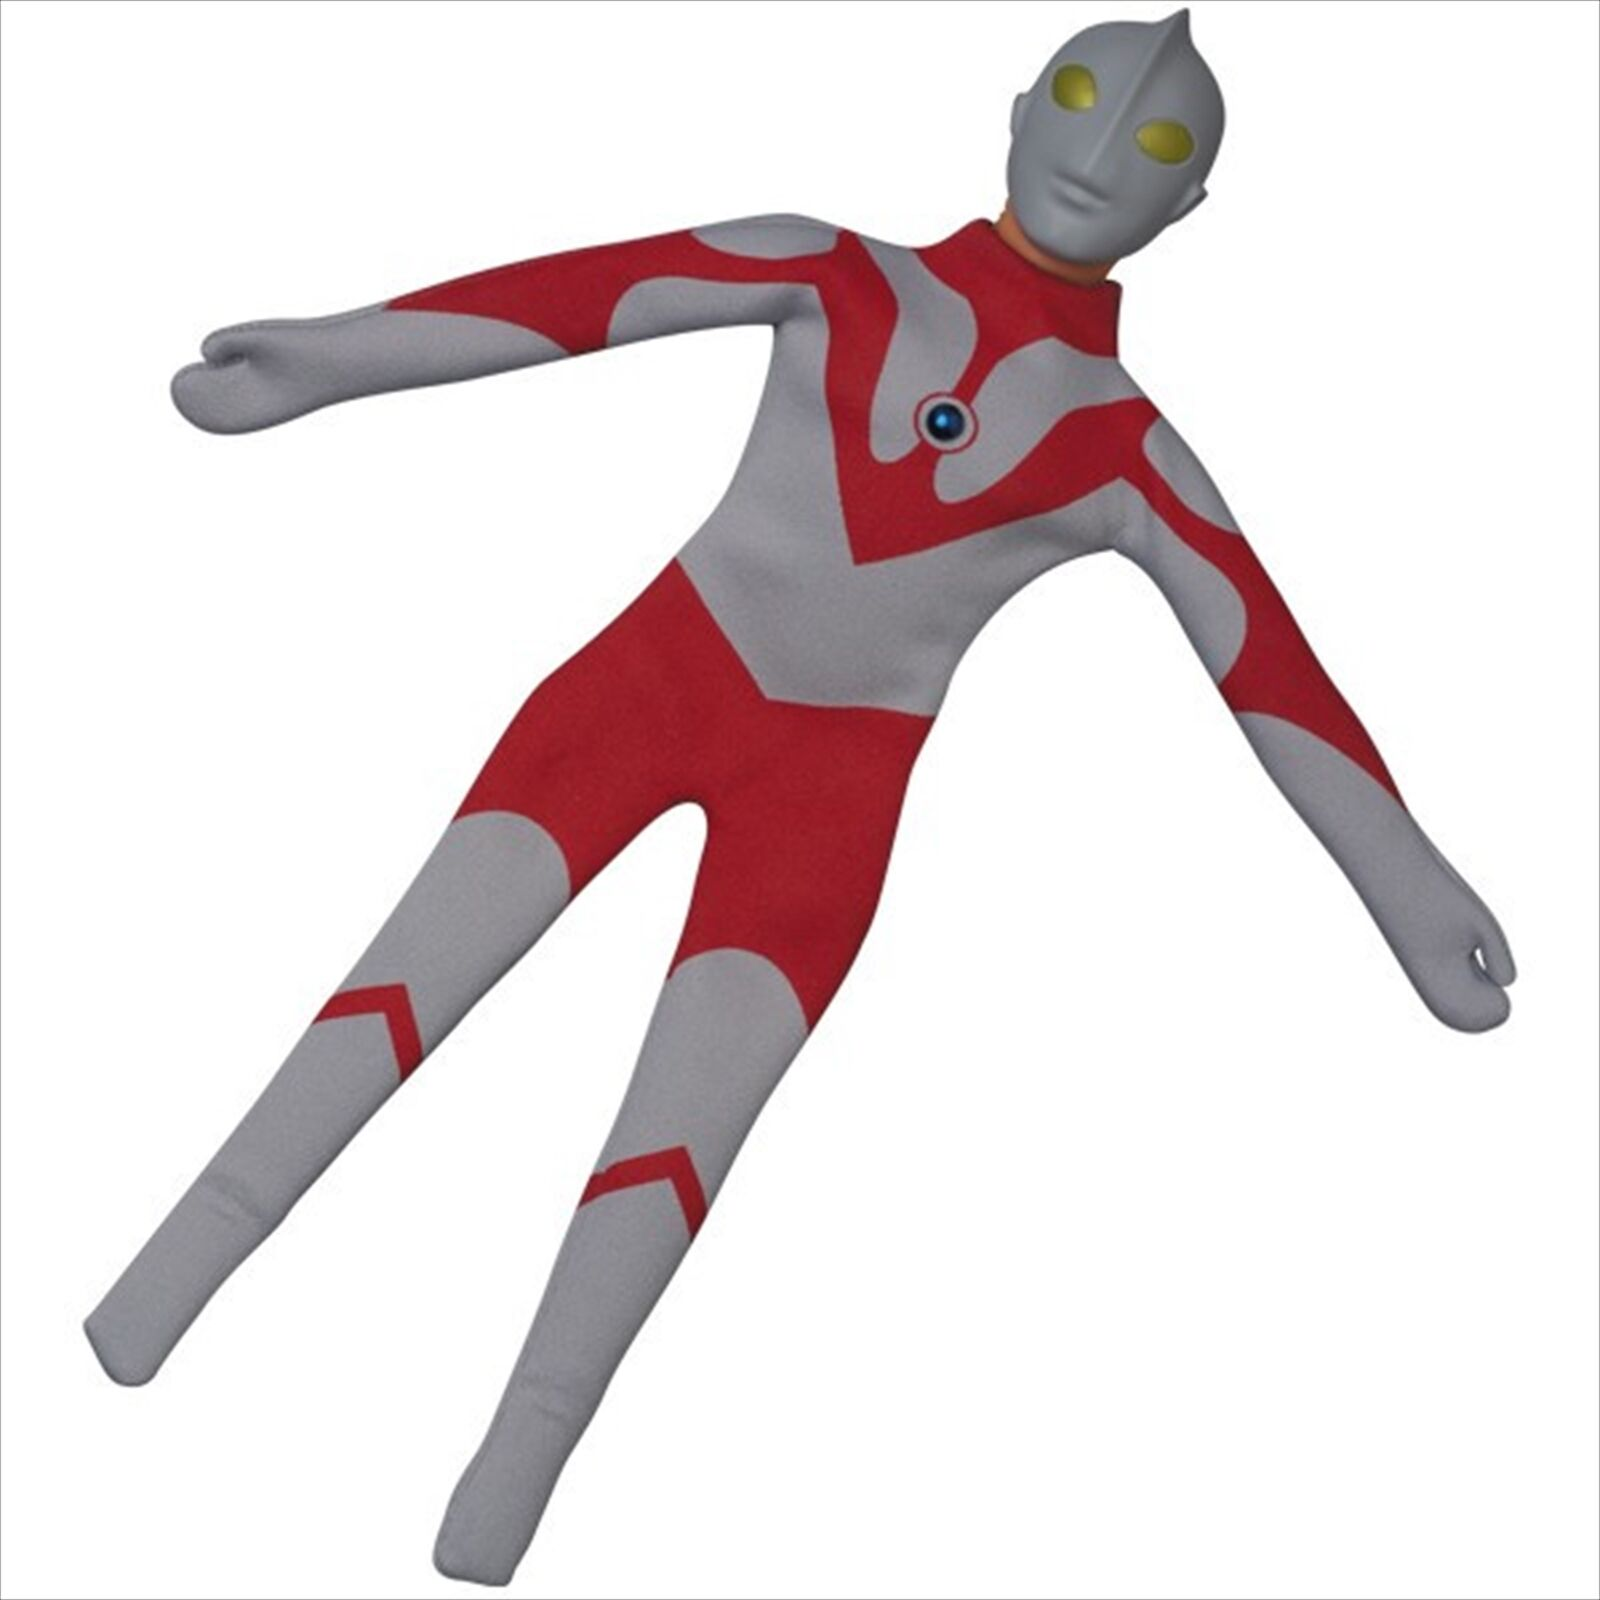 CAPTAIN ACTION Ultraman outfit 1 6 scale-out Medicom Toy Premium Club Limited